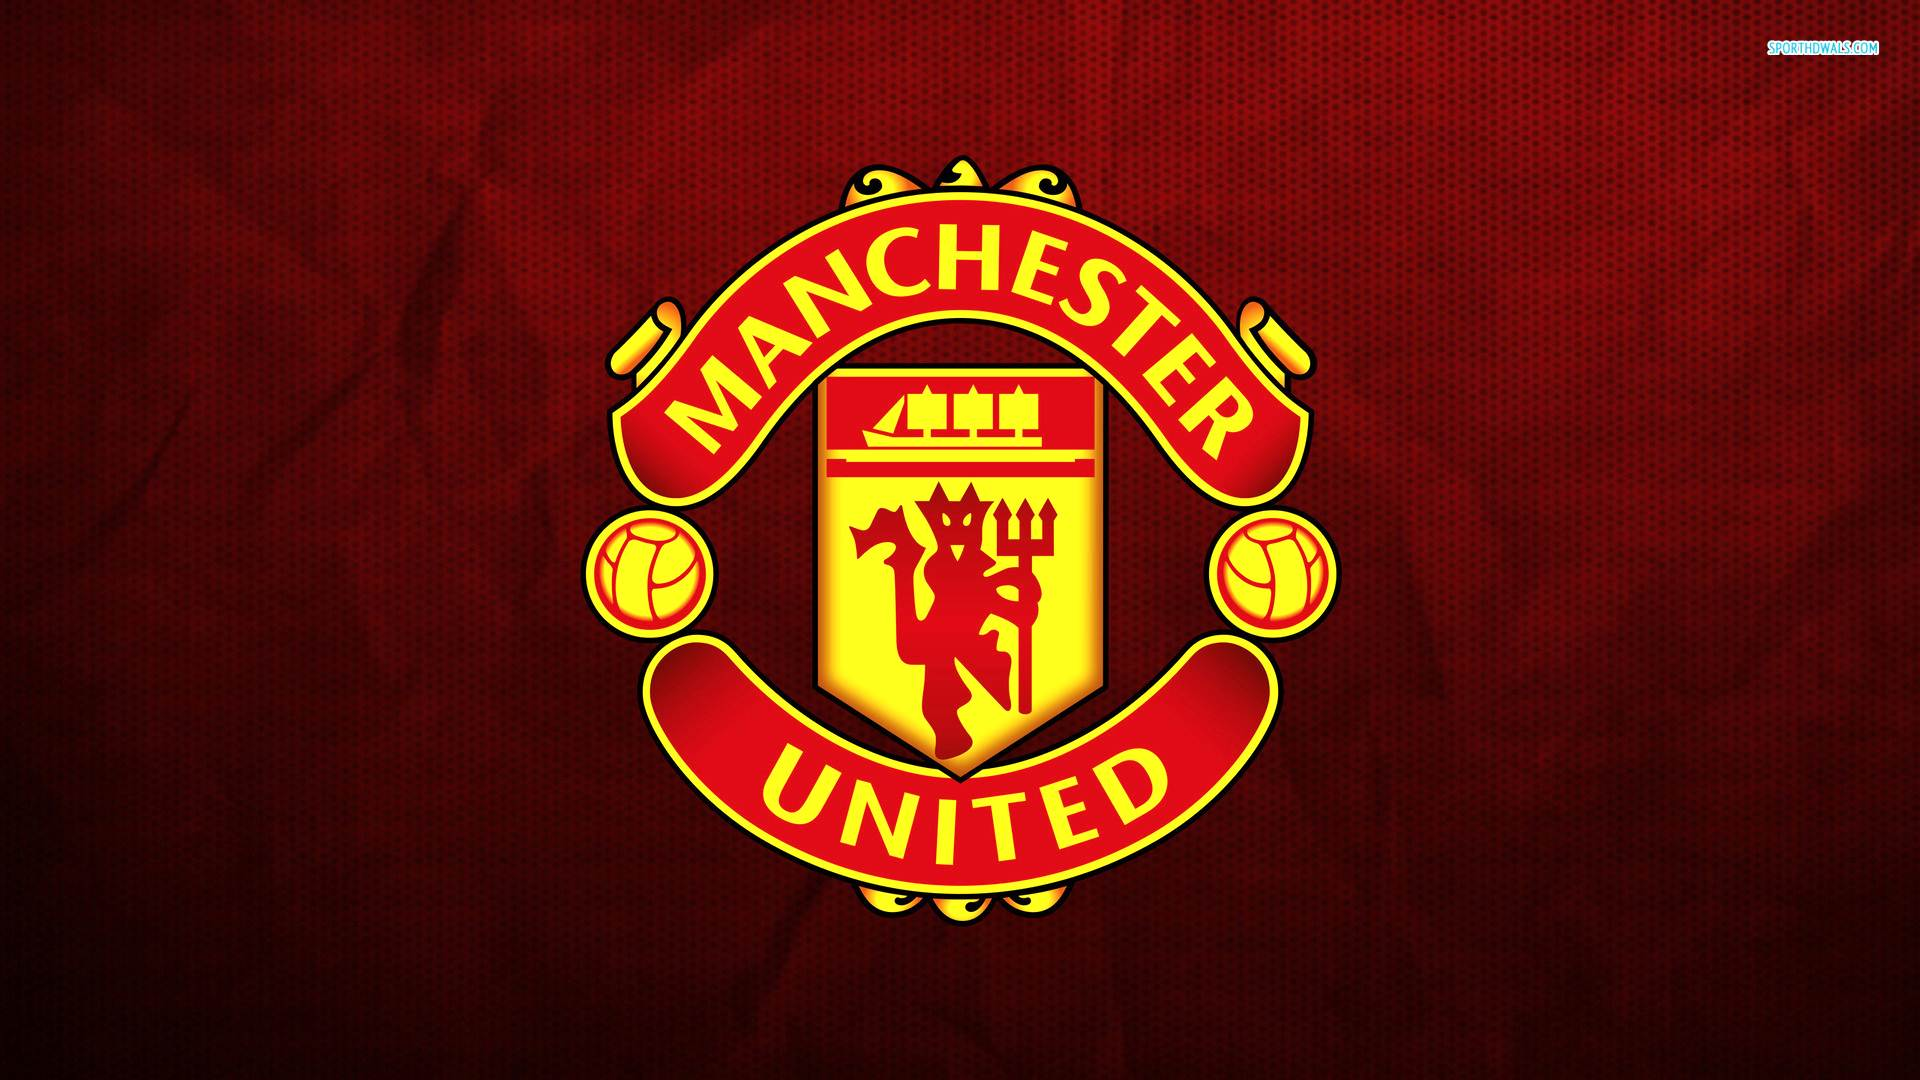 wallpapers logo manchester united 2016 wallpaper cave